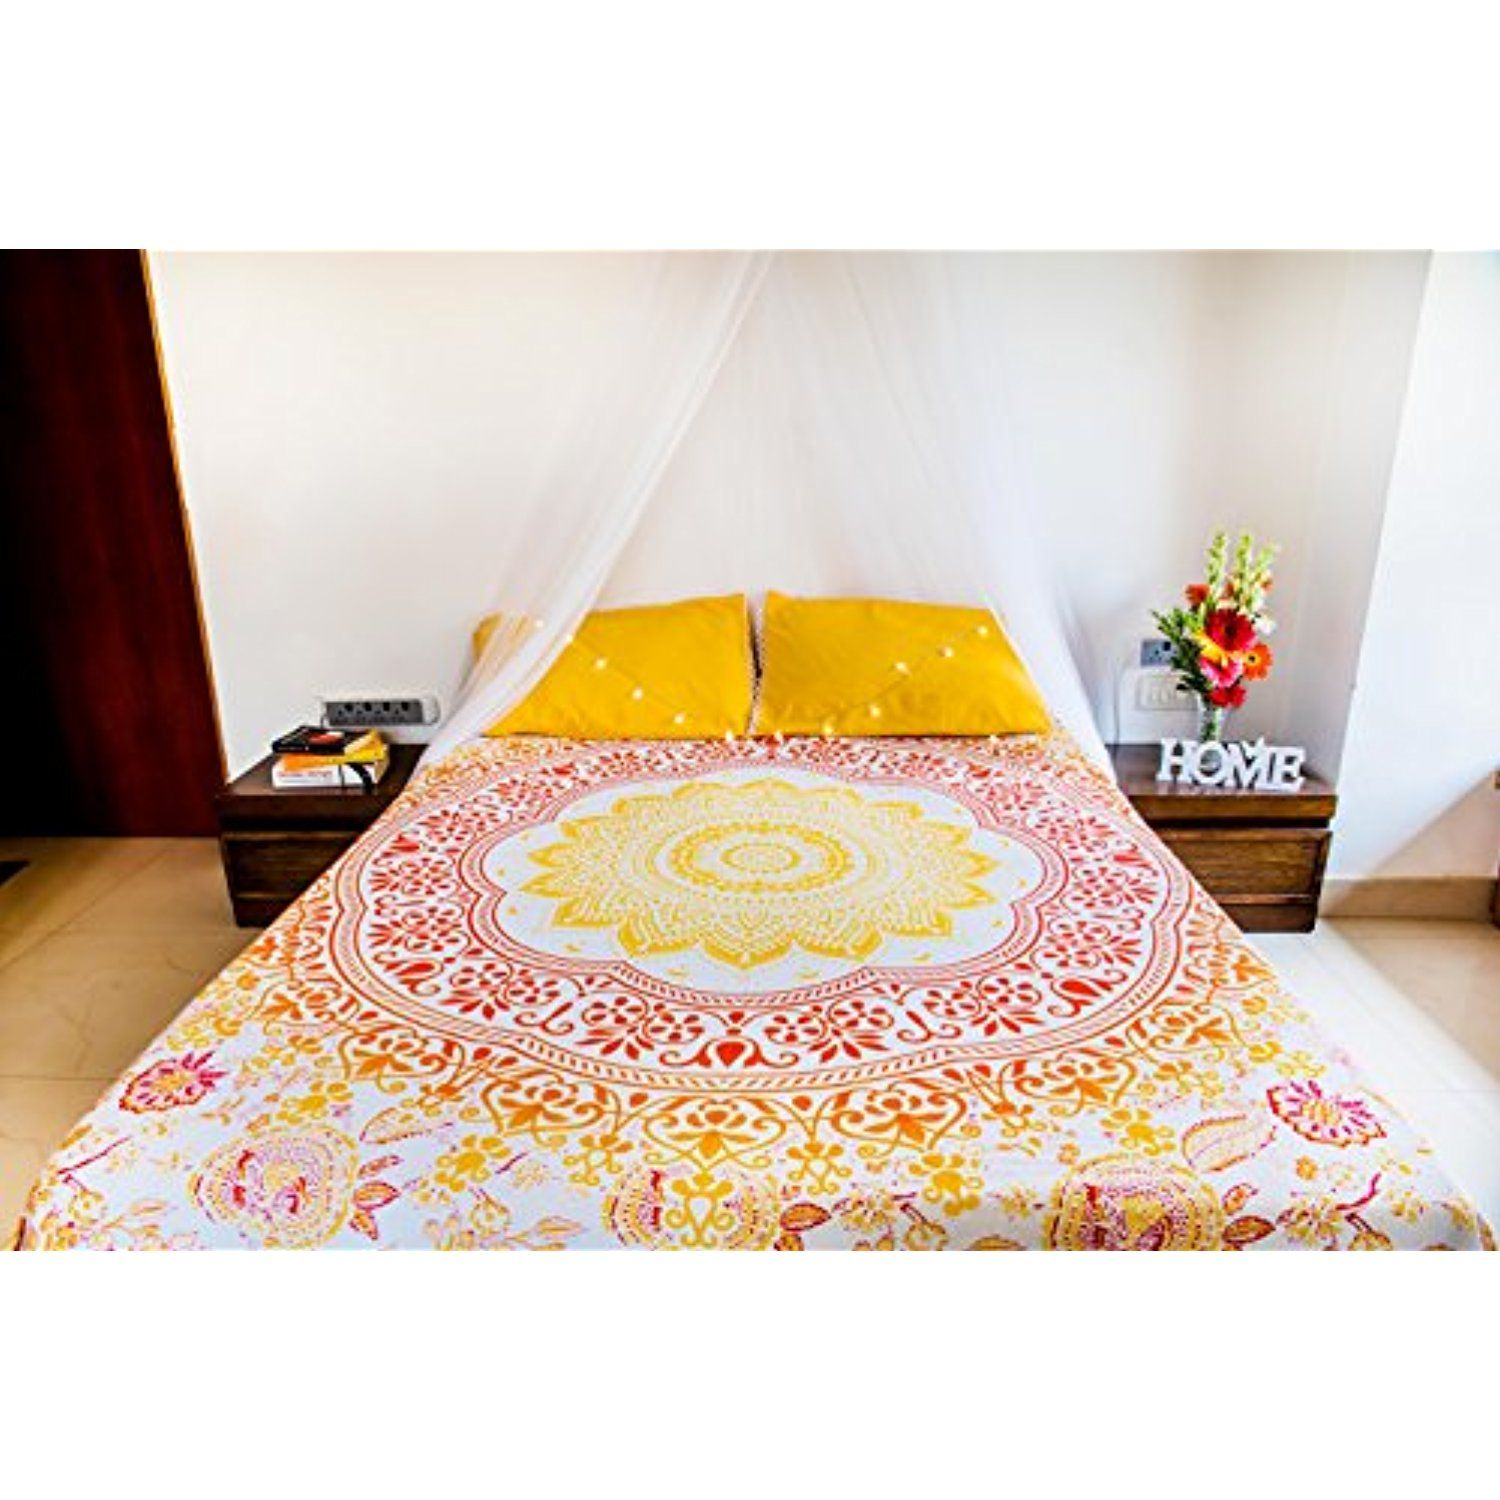 Folkulture Sunflower Mandala Tapestry Bedding With Pillow Covers